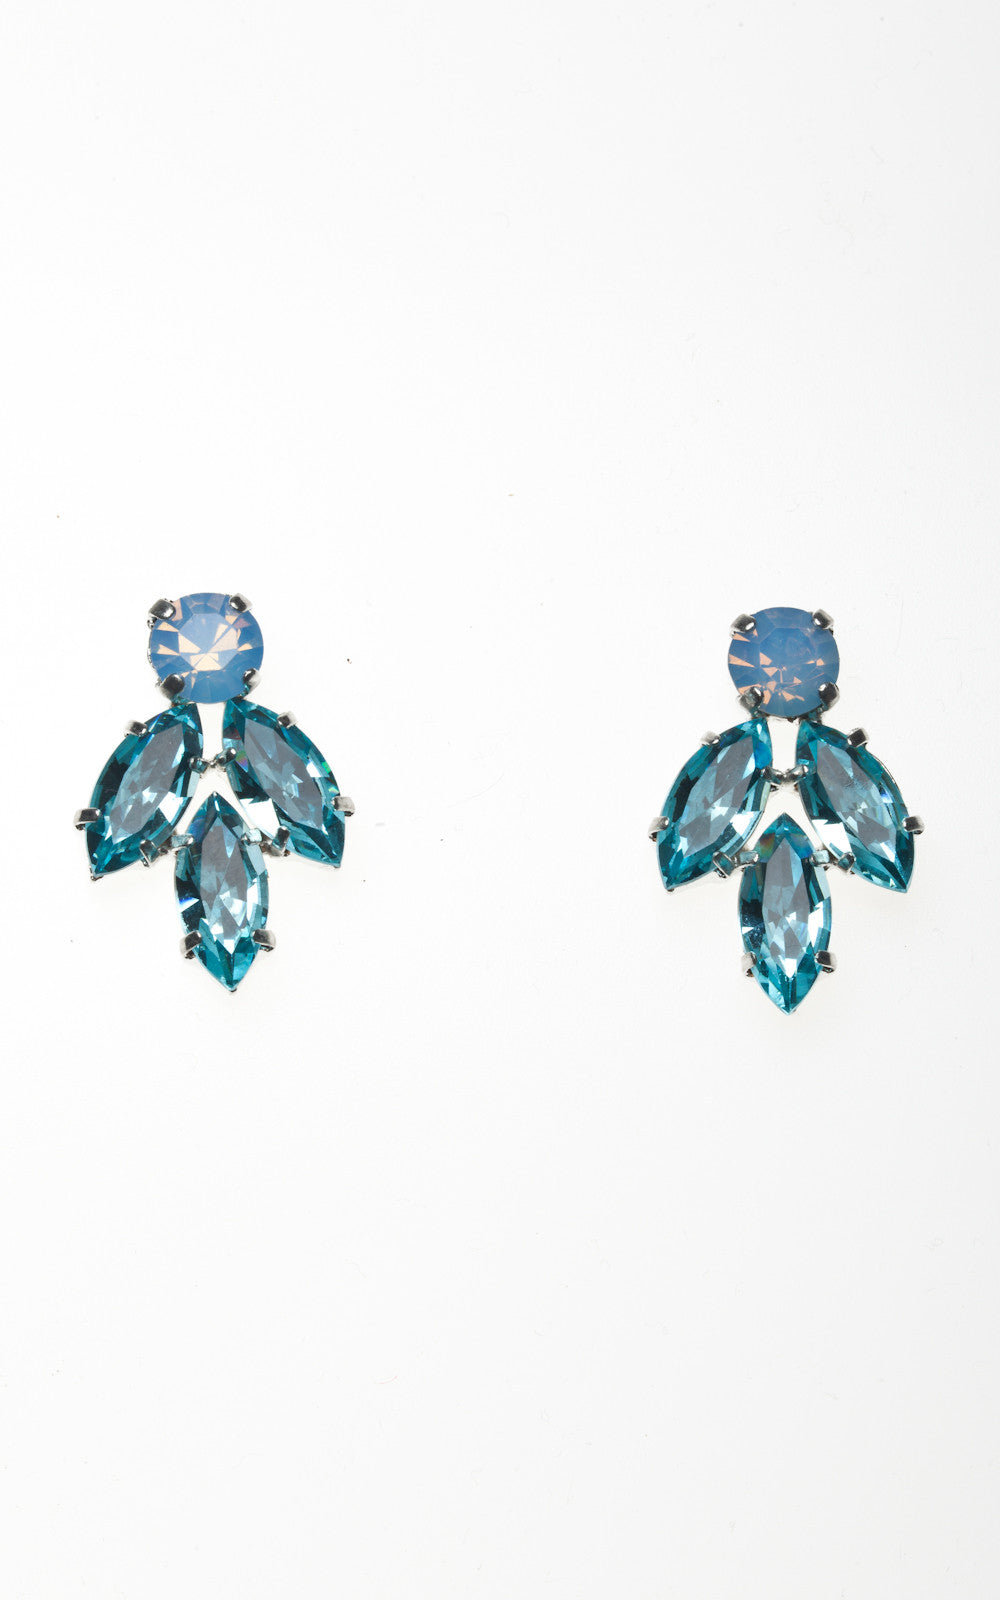 aqua jewelers products aquamarine stud earrings marine plante studs dainty